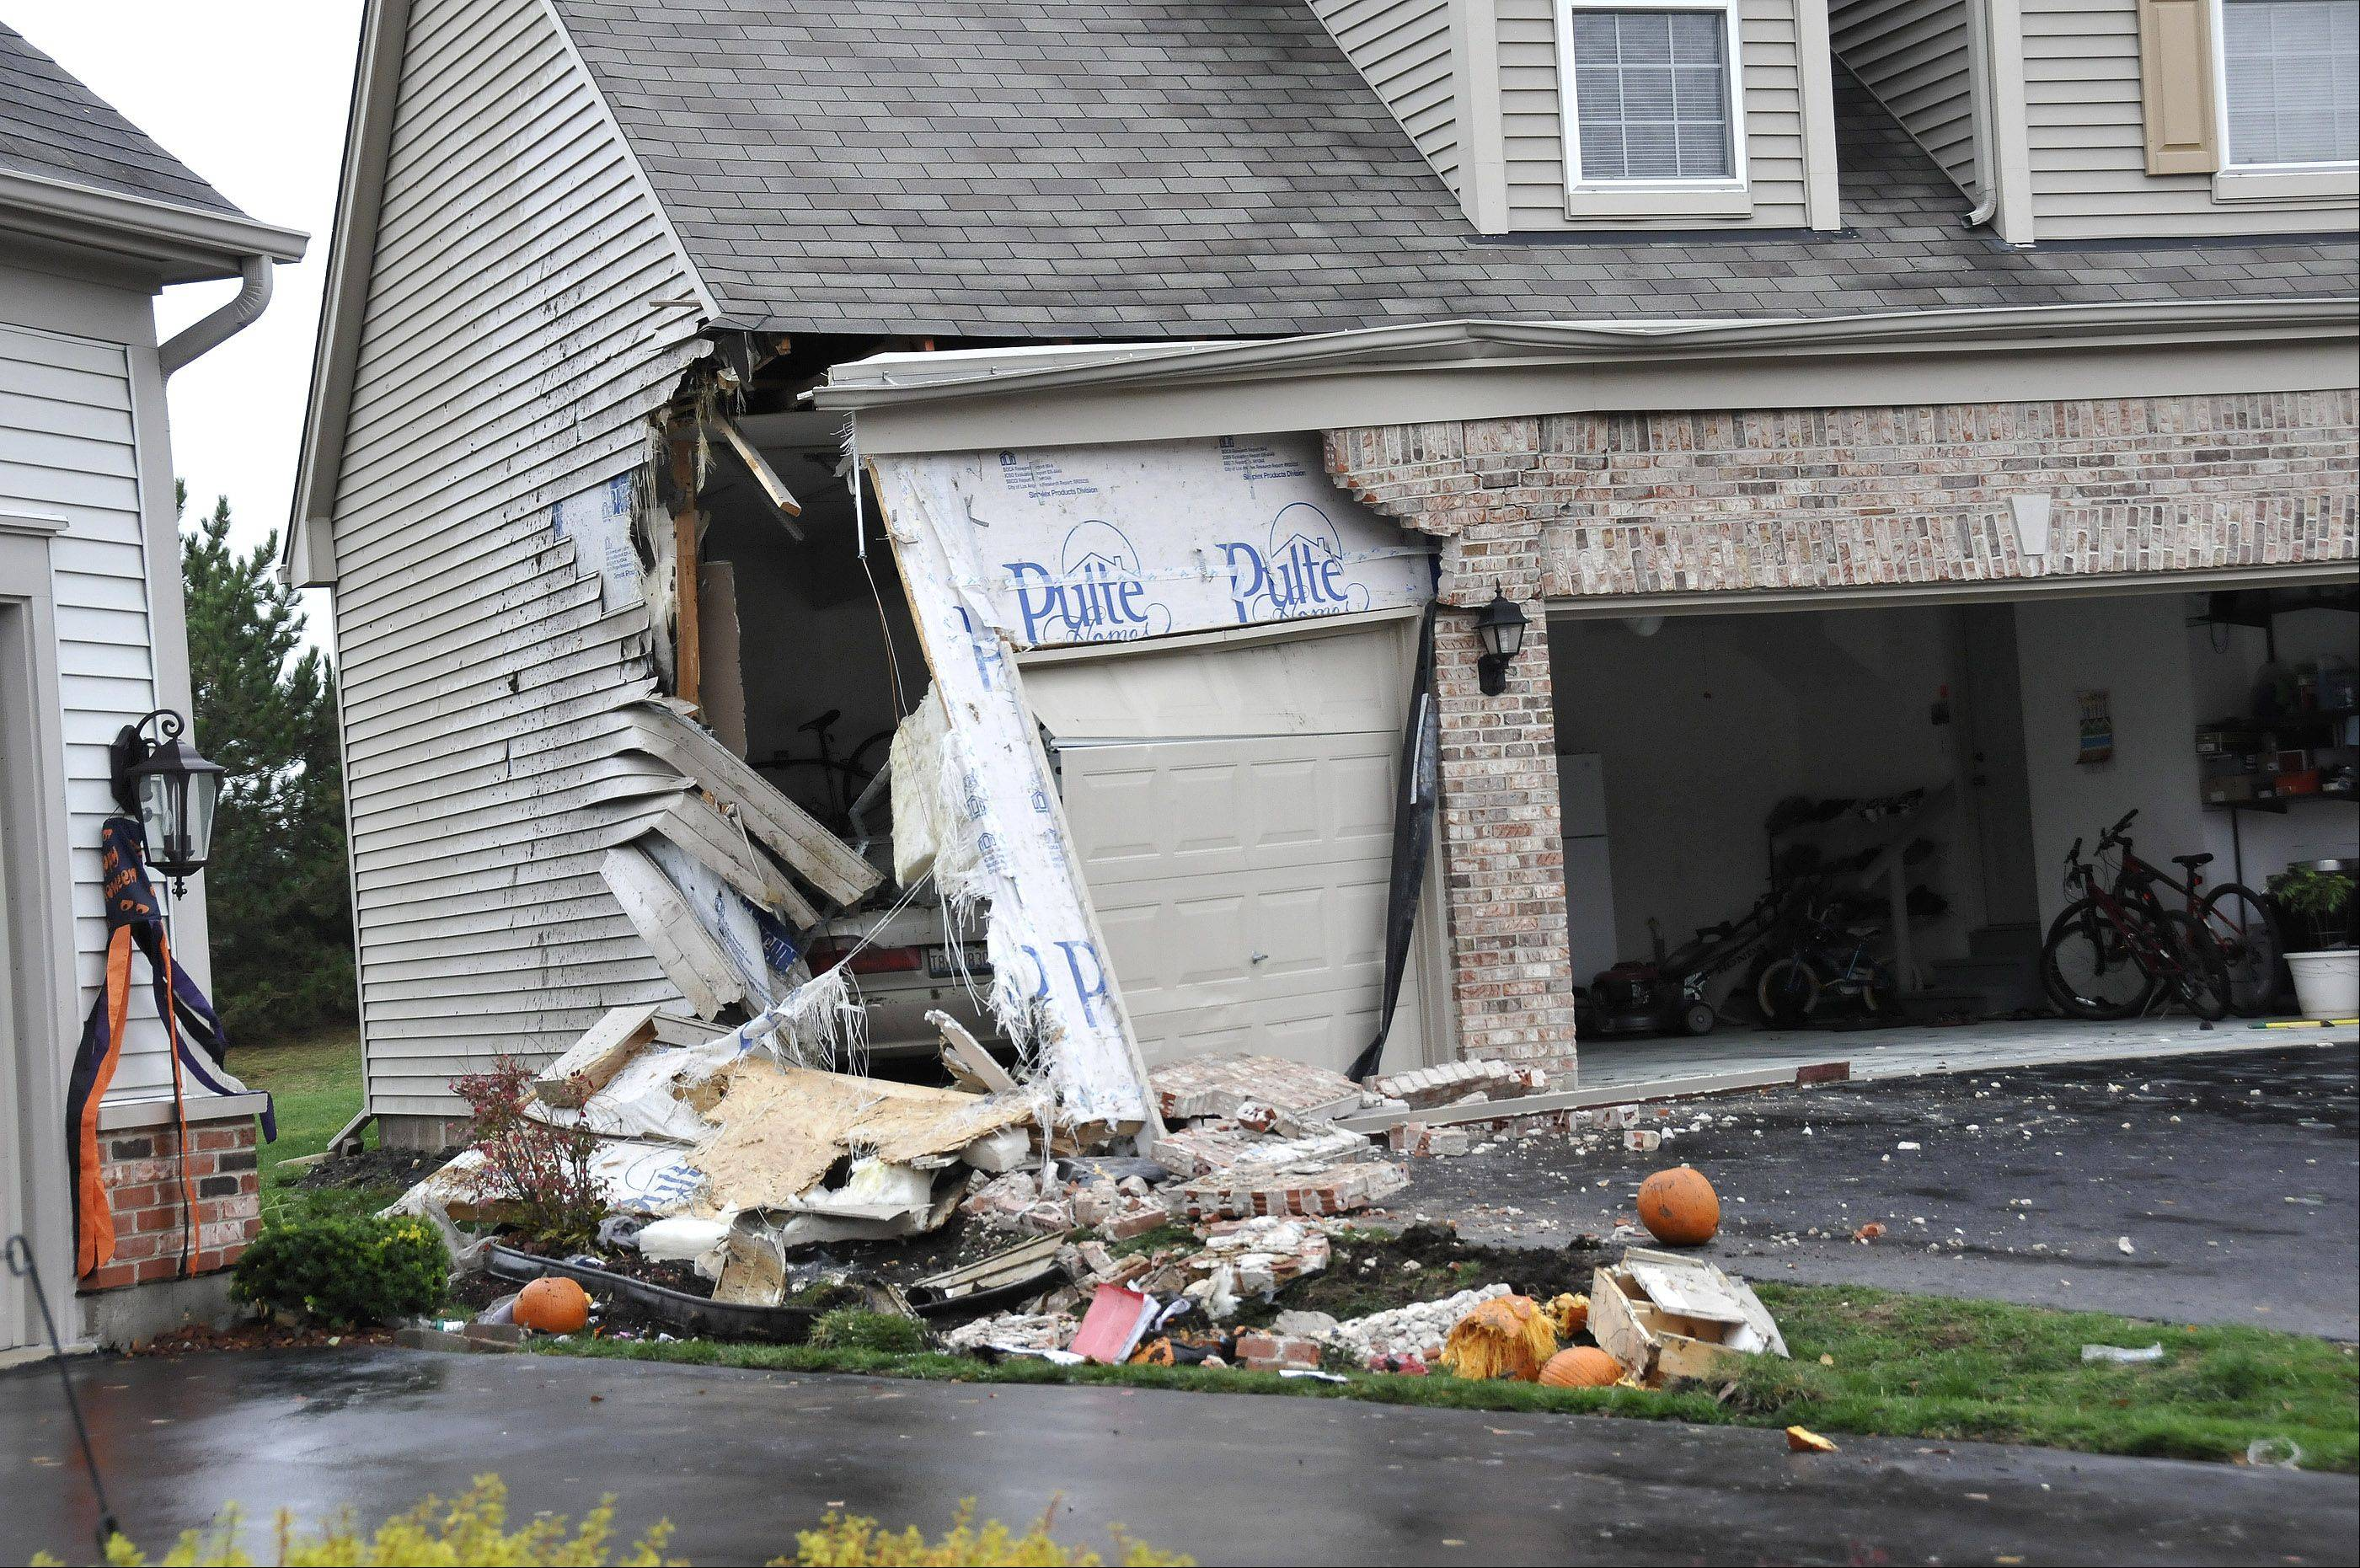 Metea Valley High School student Devin Meadows was killed Oct. 23 when a car he was riding in went out of control and smashed into a house's garage on the 2700 block of Hamman Way in Aurora.